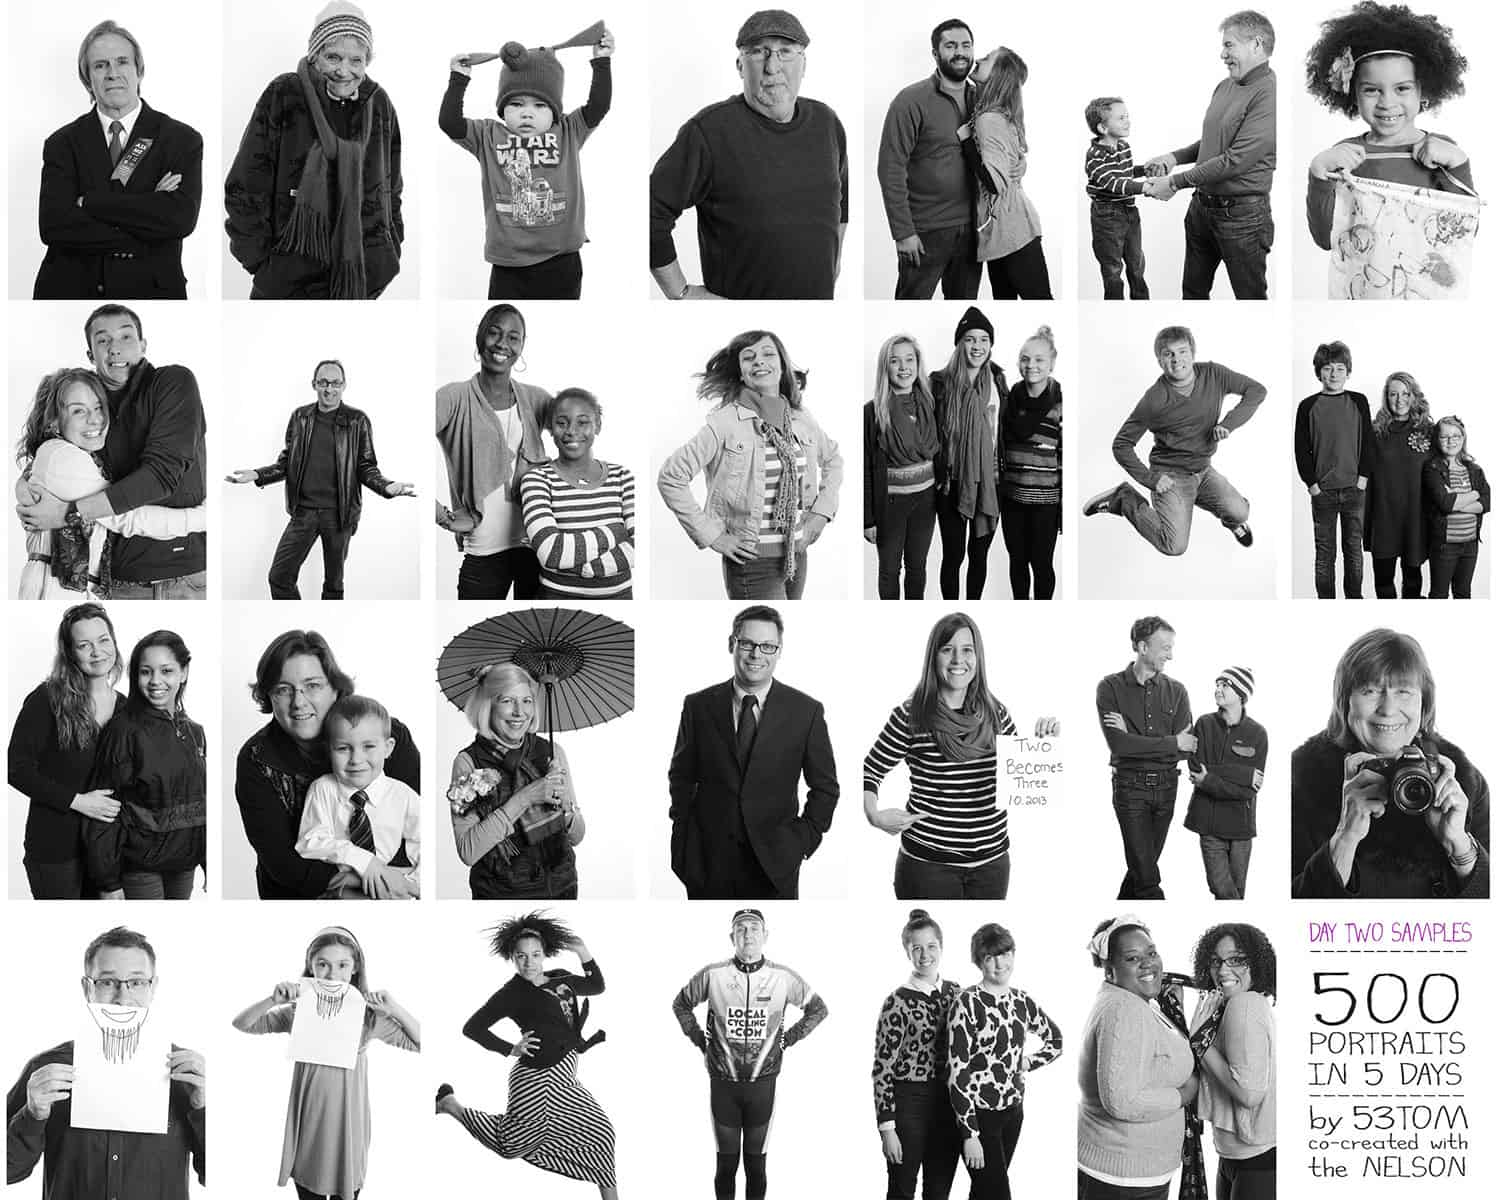 ONE by ONE Community Portrait Nelson Atkins Day 2 photo grid